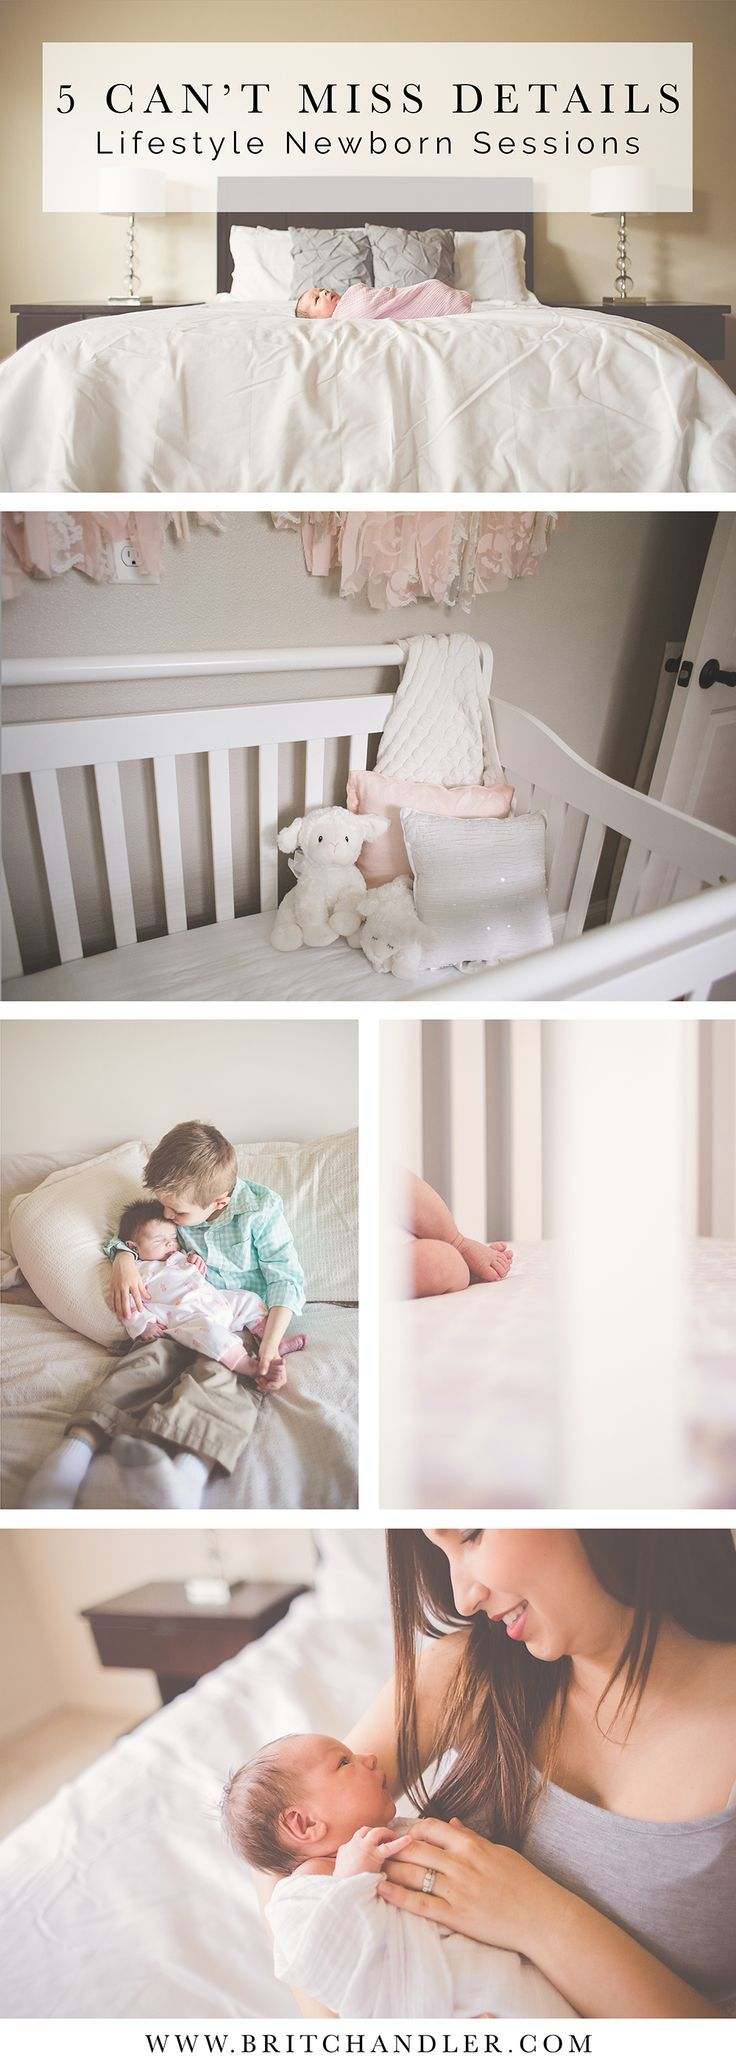 5 Can't Miss Details for Lifestyle Newborn Sessions. Tips, tutorials, posing for lifestyle photography.: